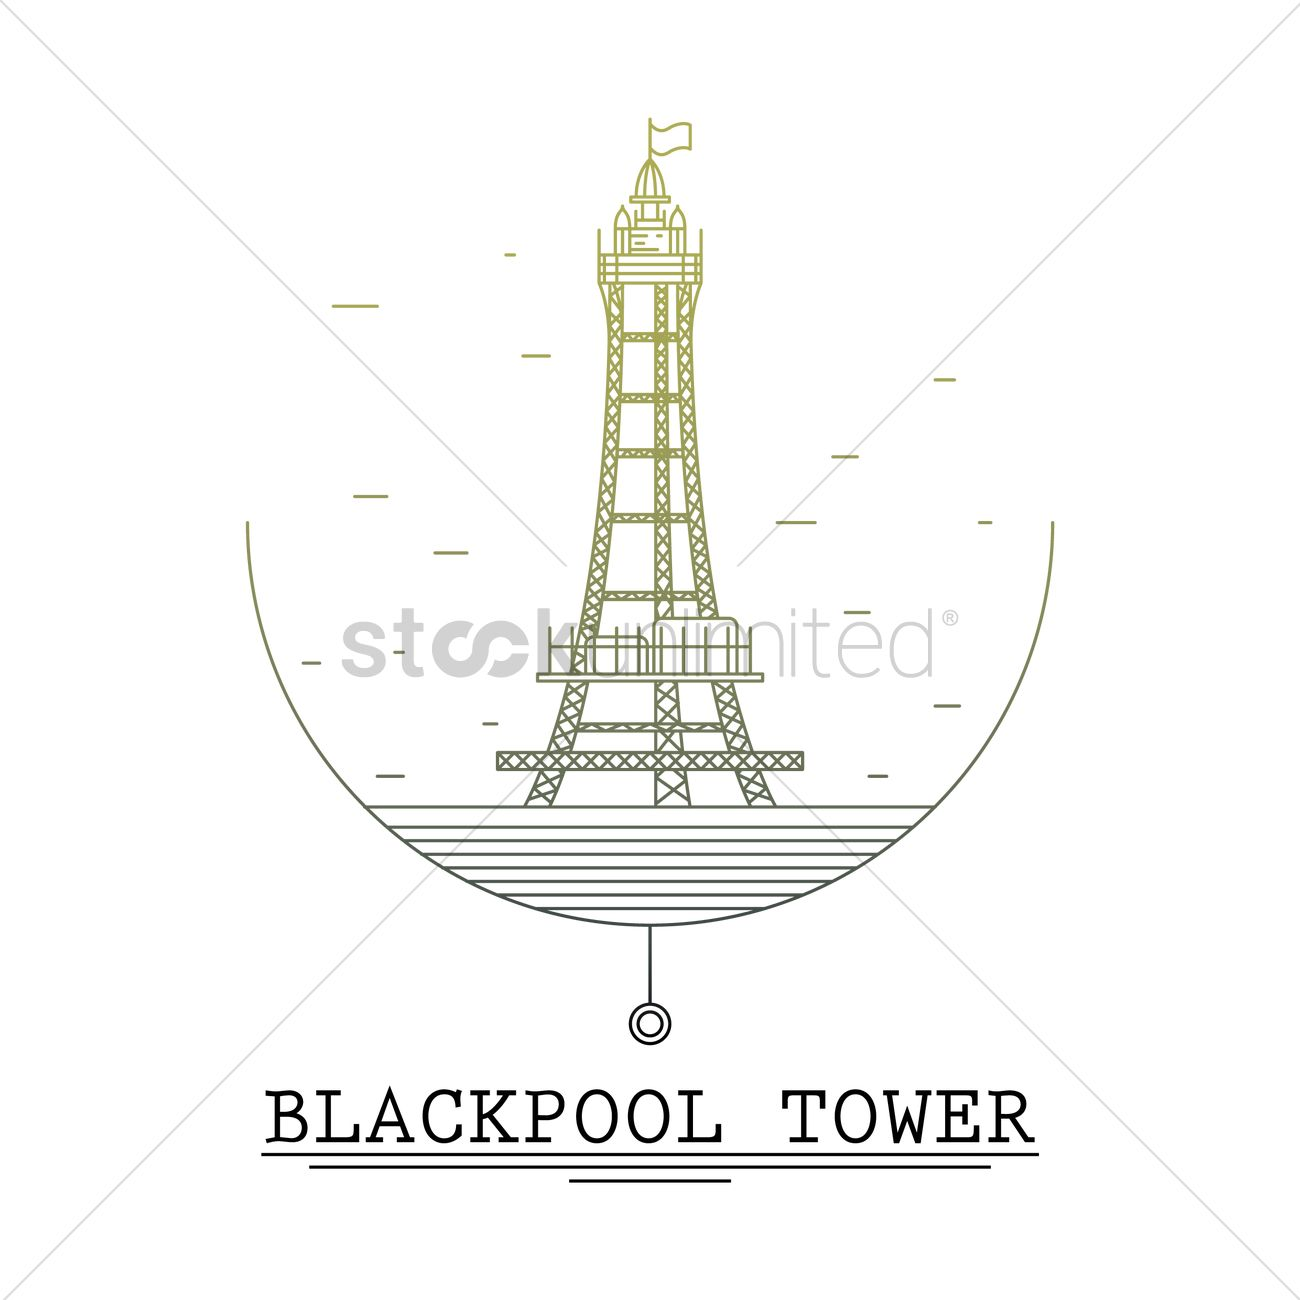 Blackpool tower Vector Image.